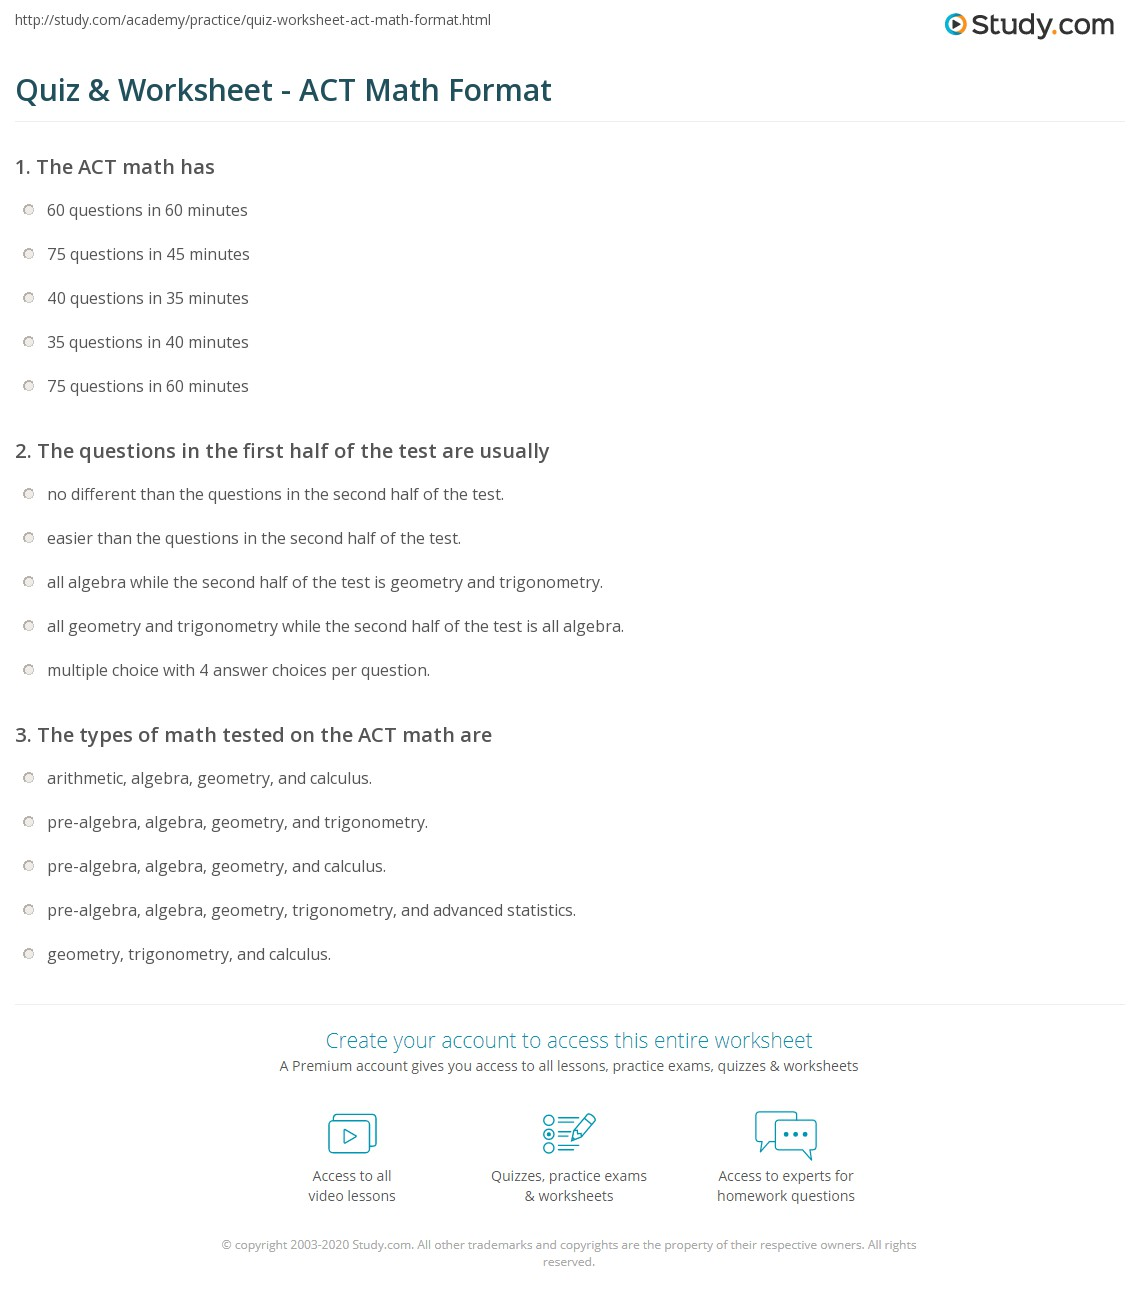 Quiz & Worksheet - ACT Math Format | Study.com